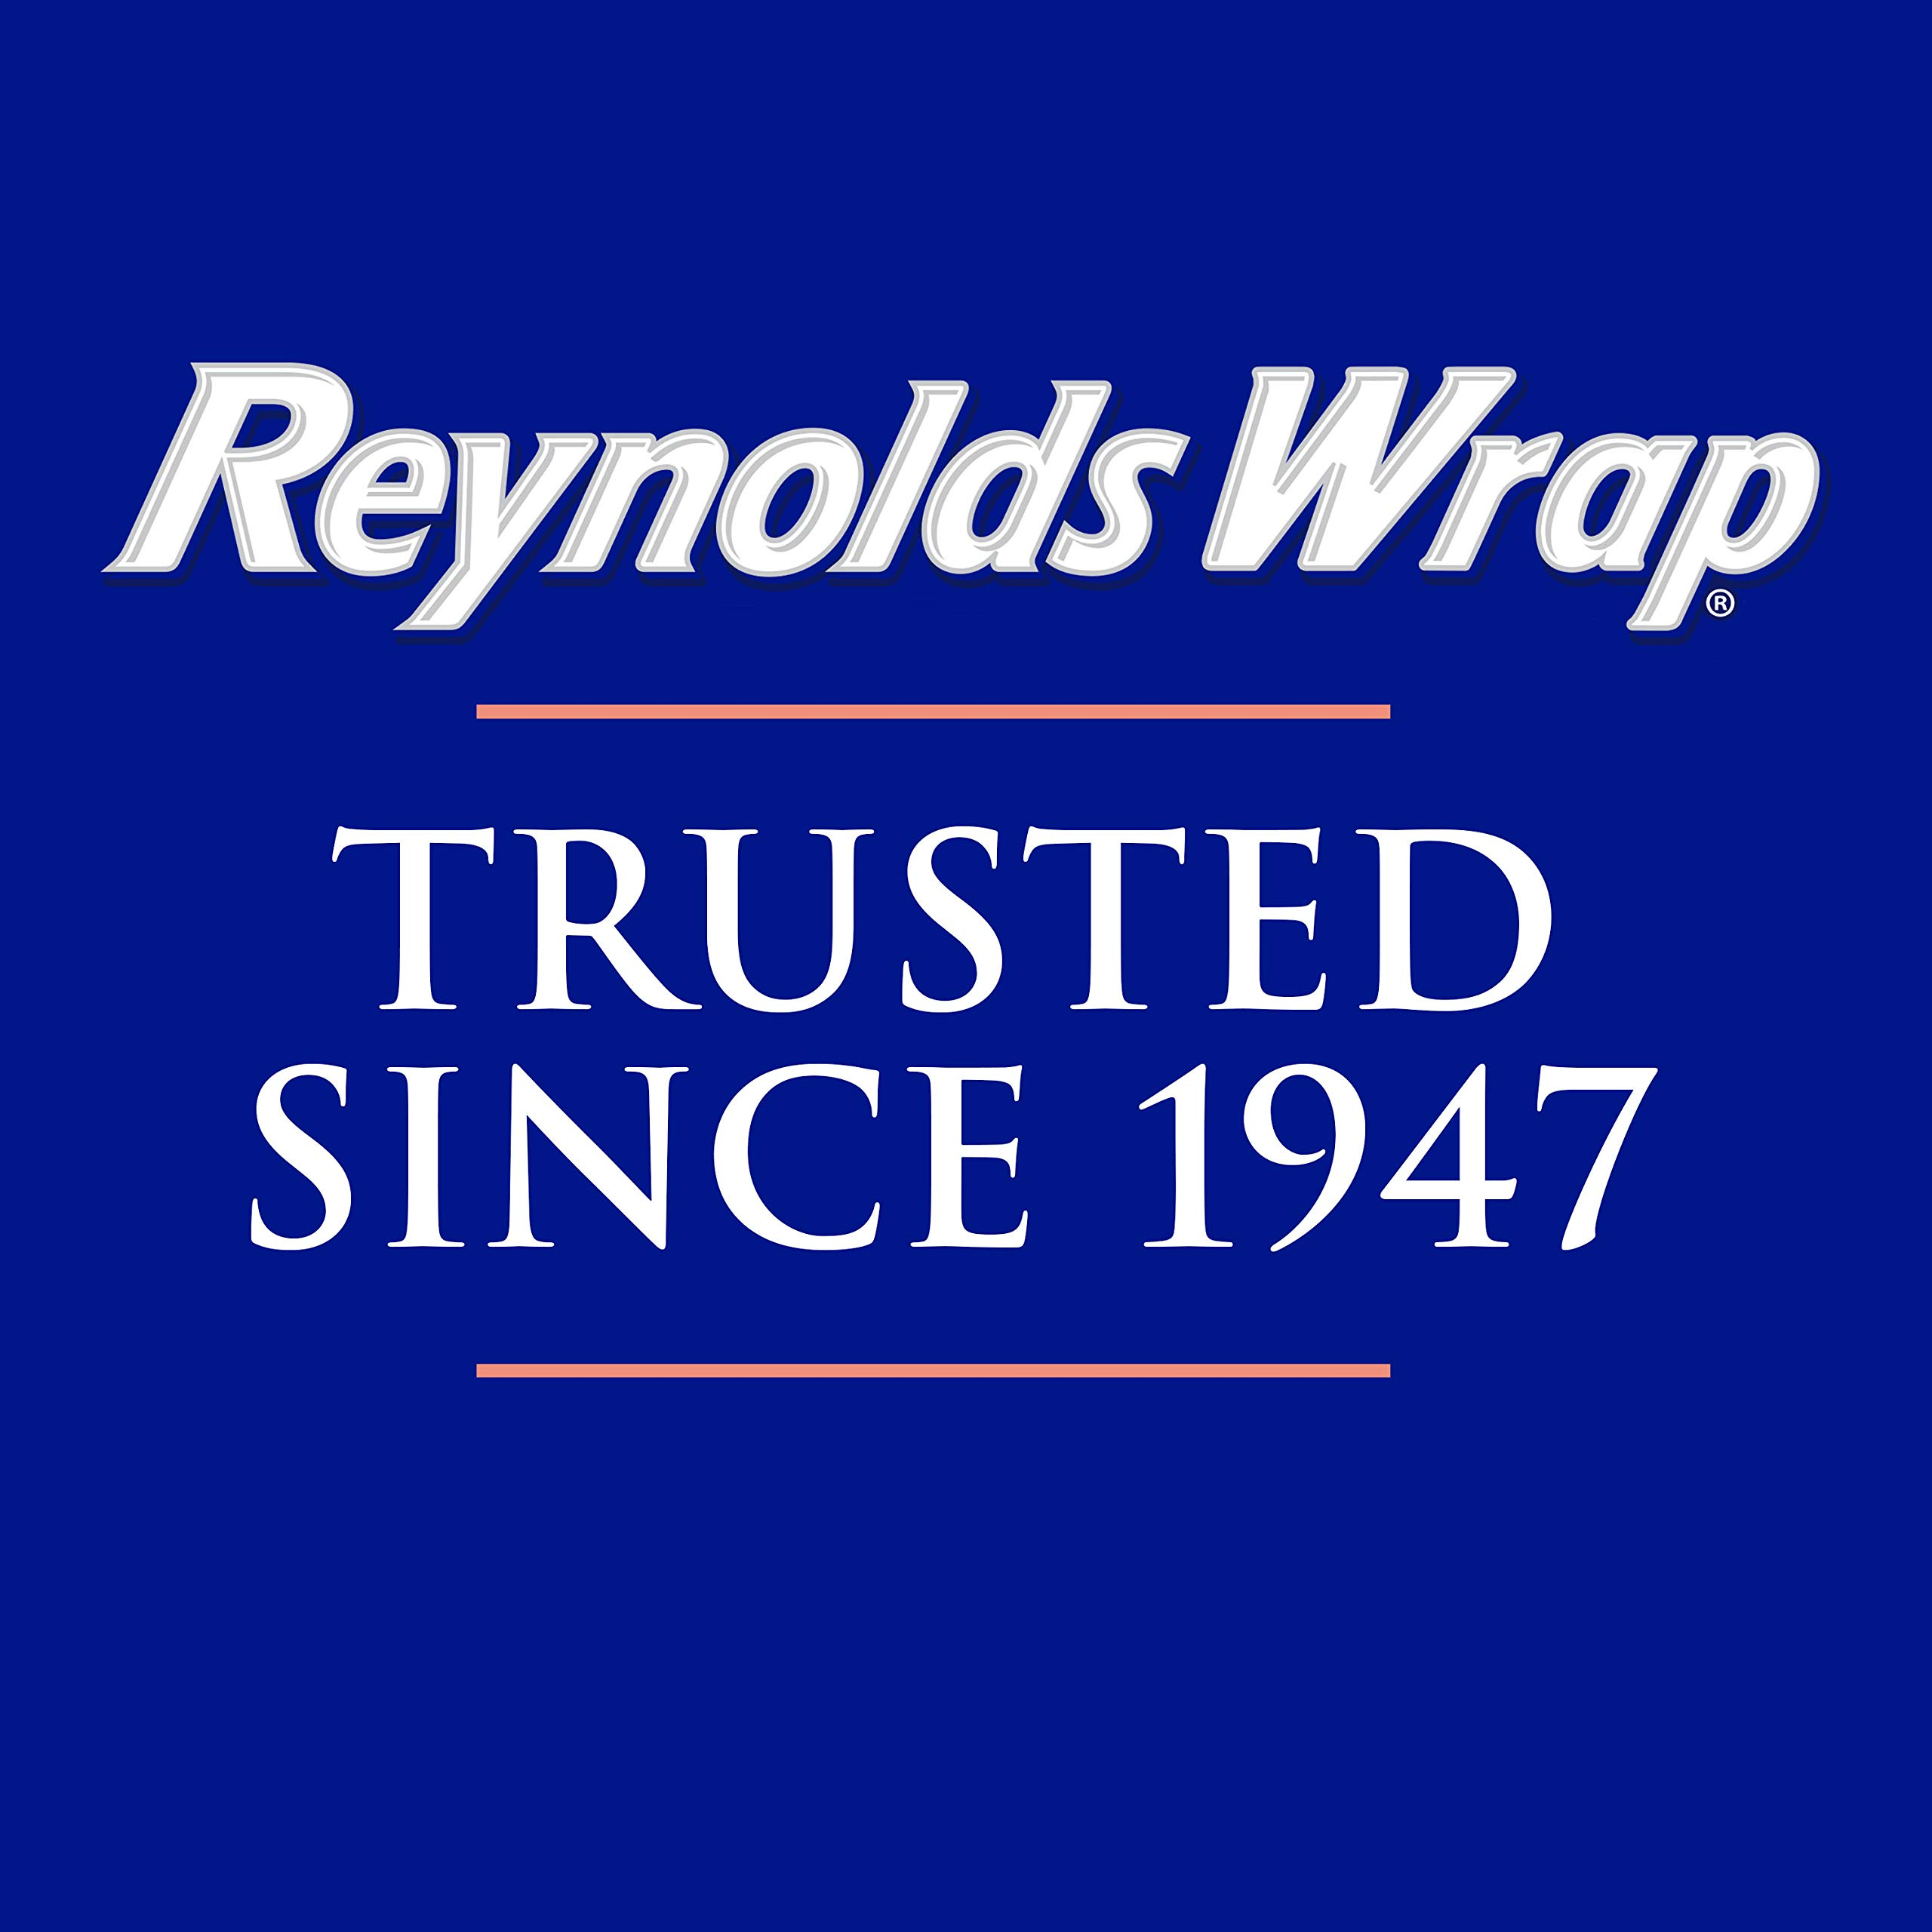 Reynolds Wrap Standard Aluminum Foil - 3 Boxes Of 200 Square' (600 Total)